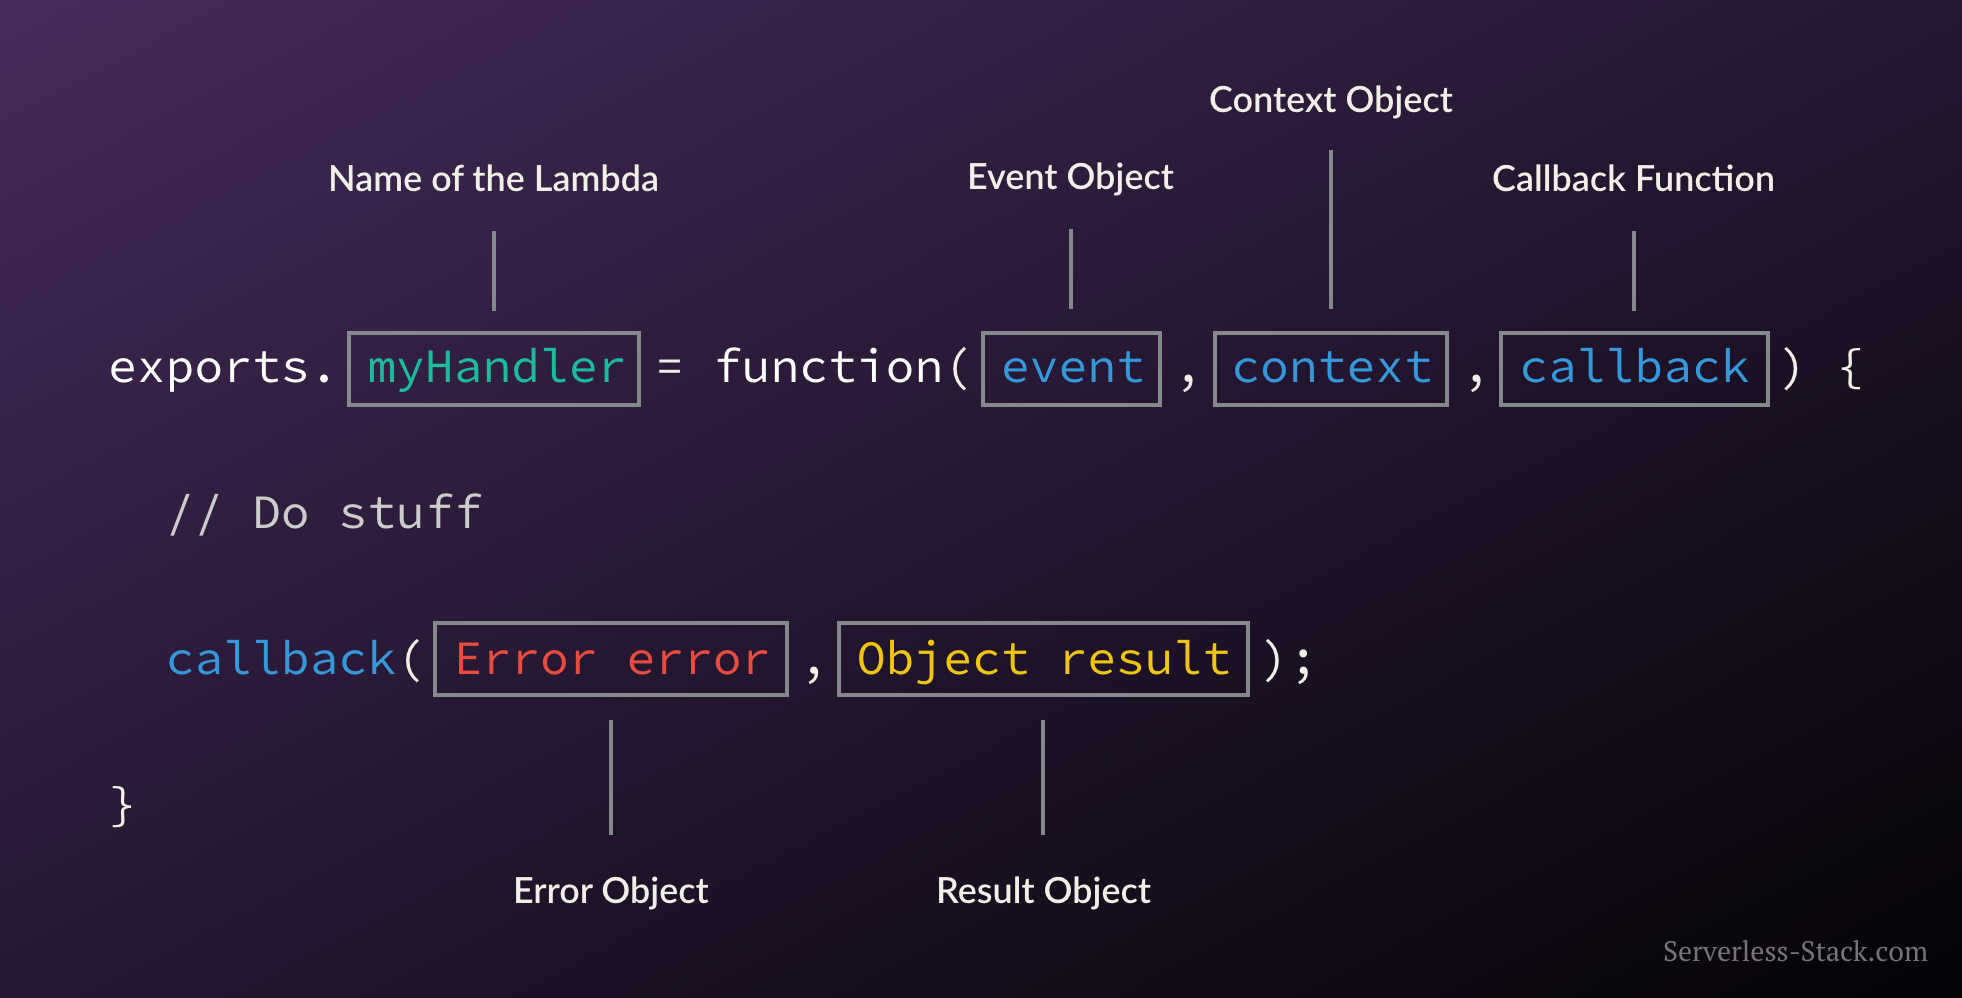 Anatomy of a Lambda Function image